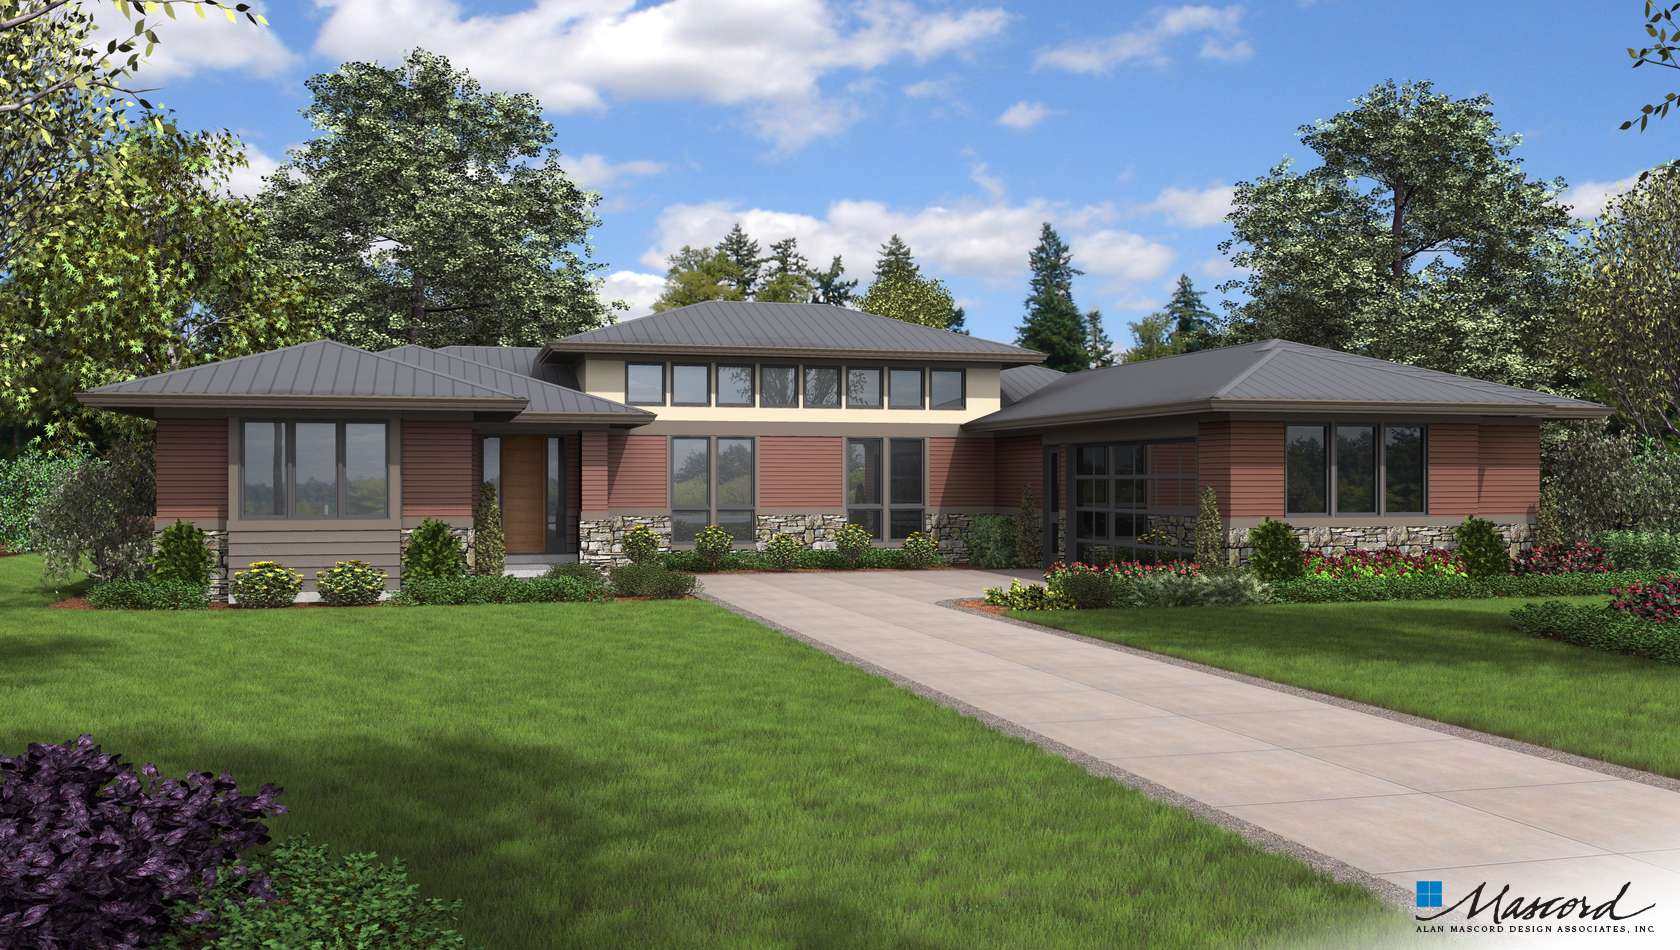 Main image for house plan 1240B: The Mapleview